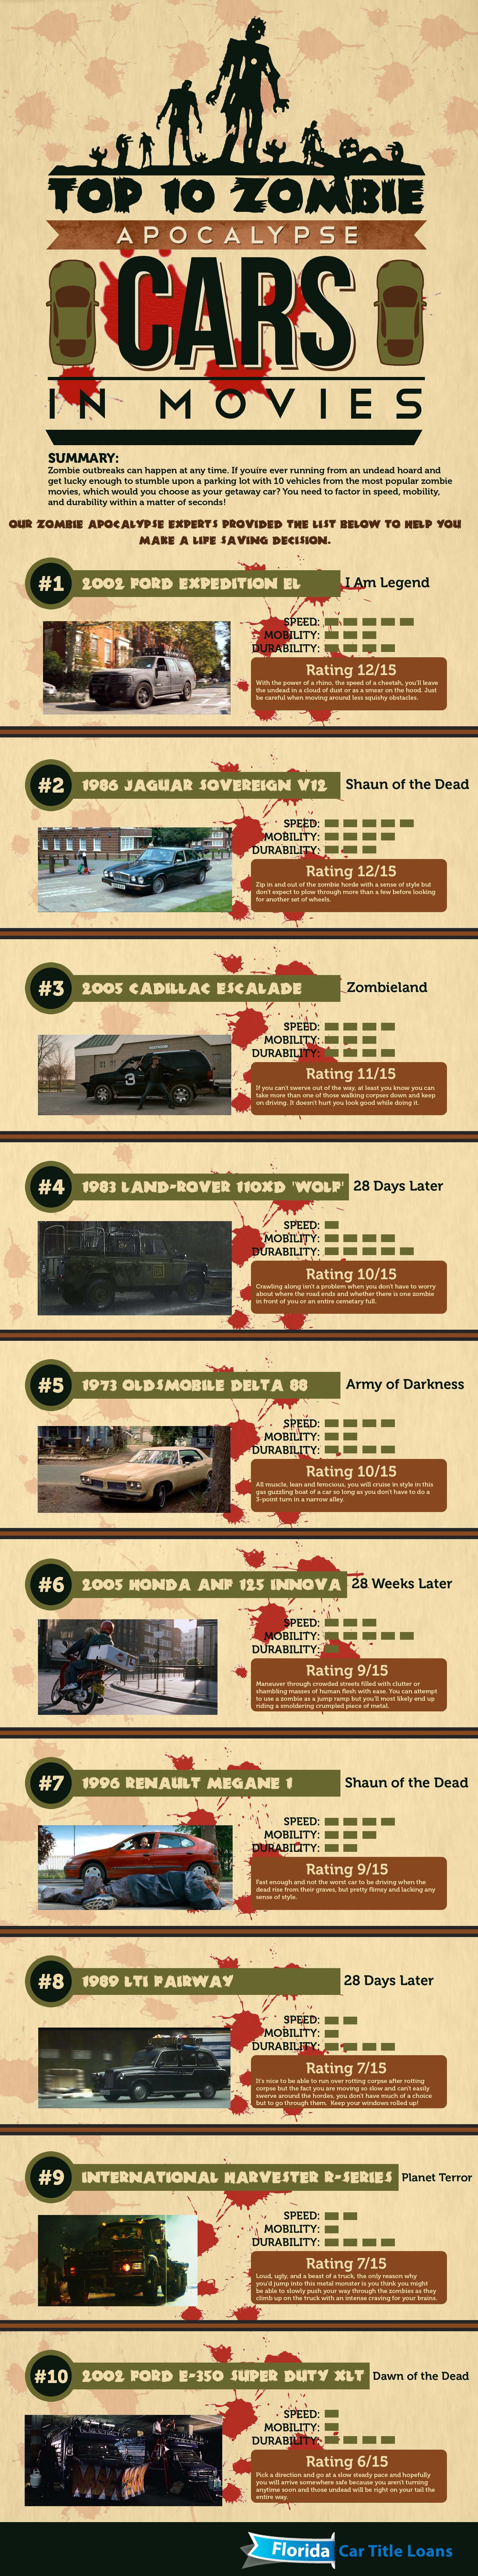 Top 10 Zombie Apocalypse Cars in Movies